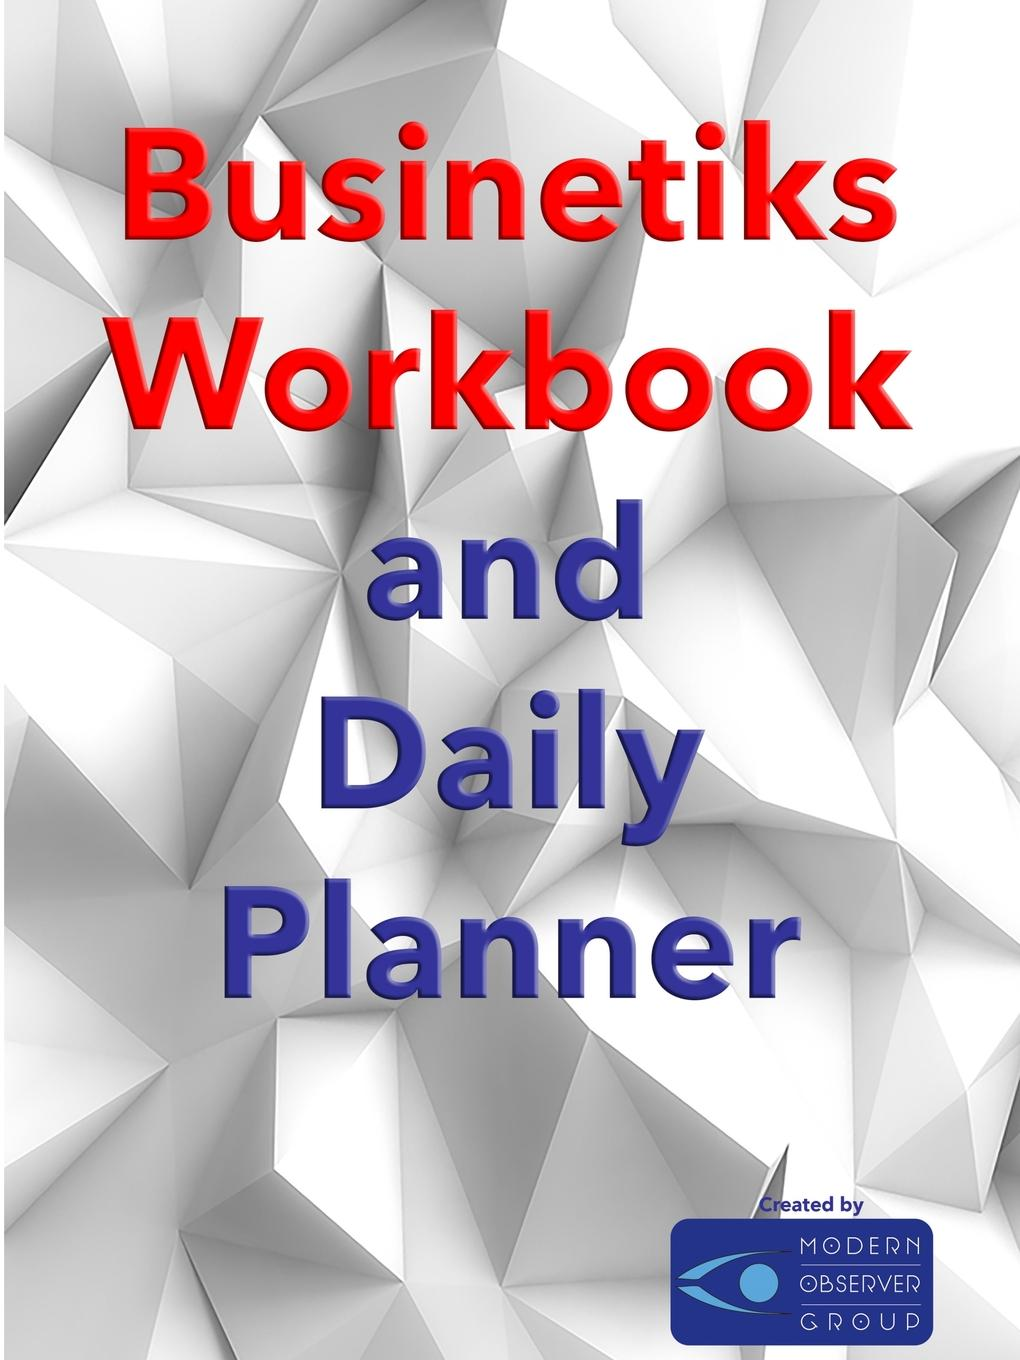 Eric Lopkin Businetiks Planner kaylee berry lifestyle blog planner journal lifestyle blogging content planner never run out of things to blog about again